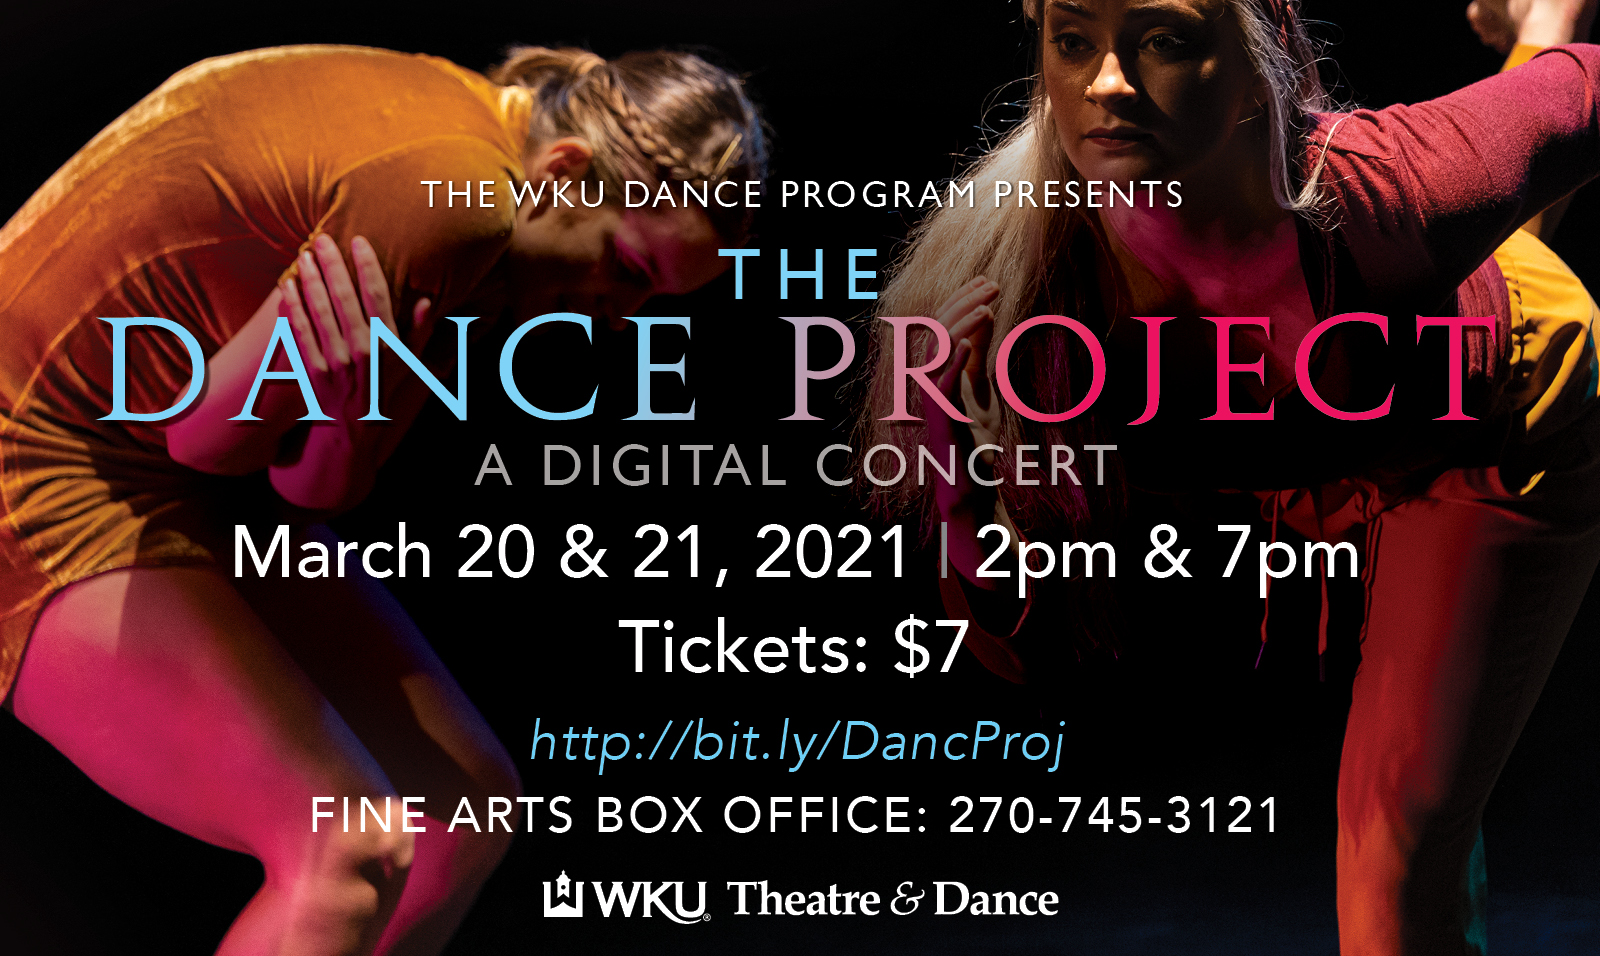 The Dance Project 2021